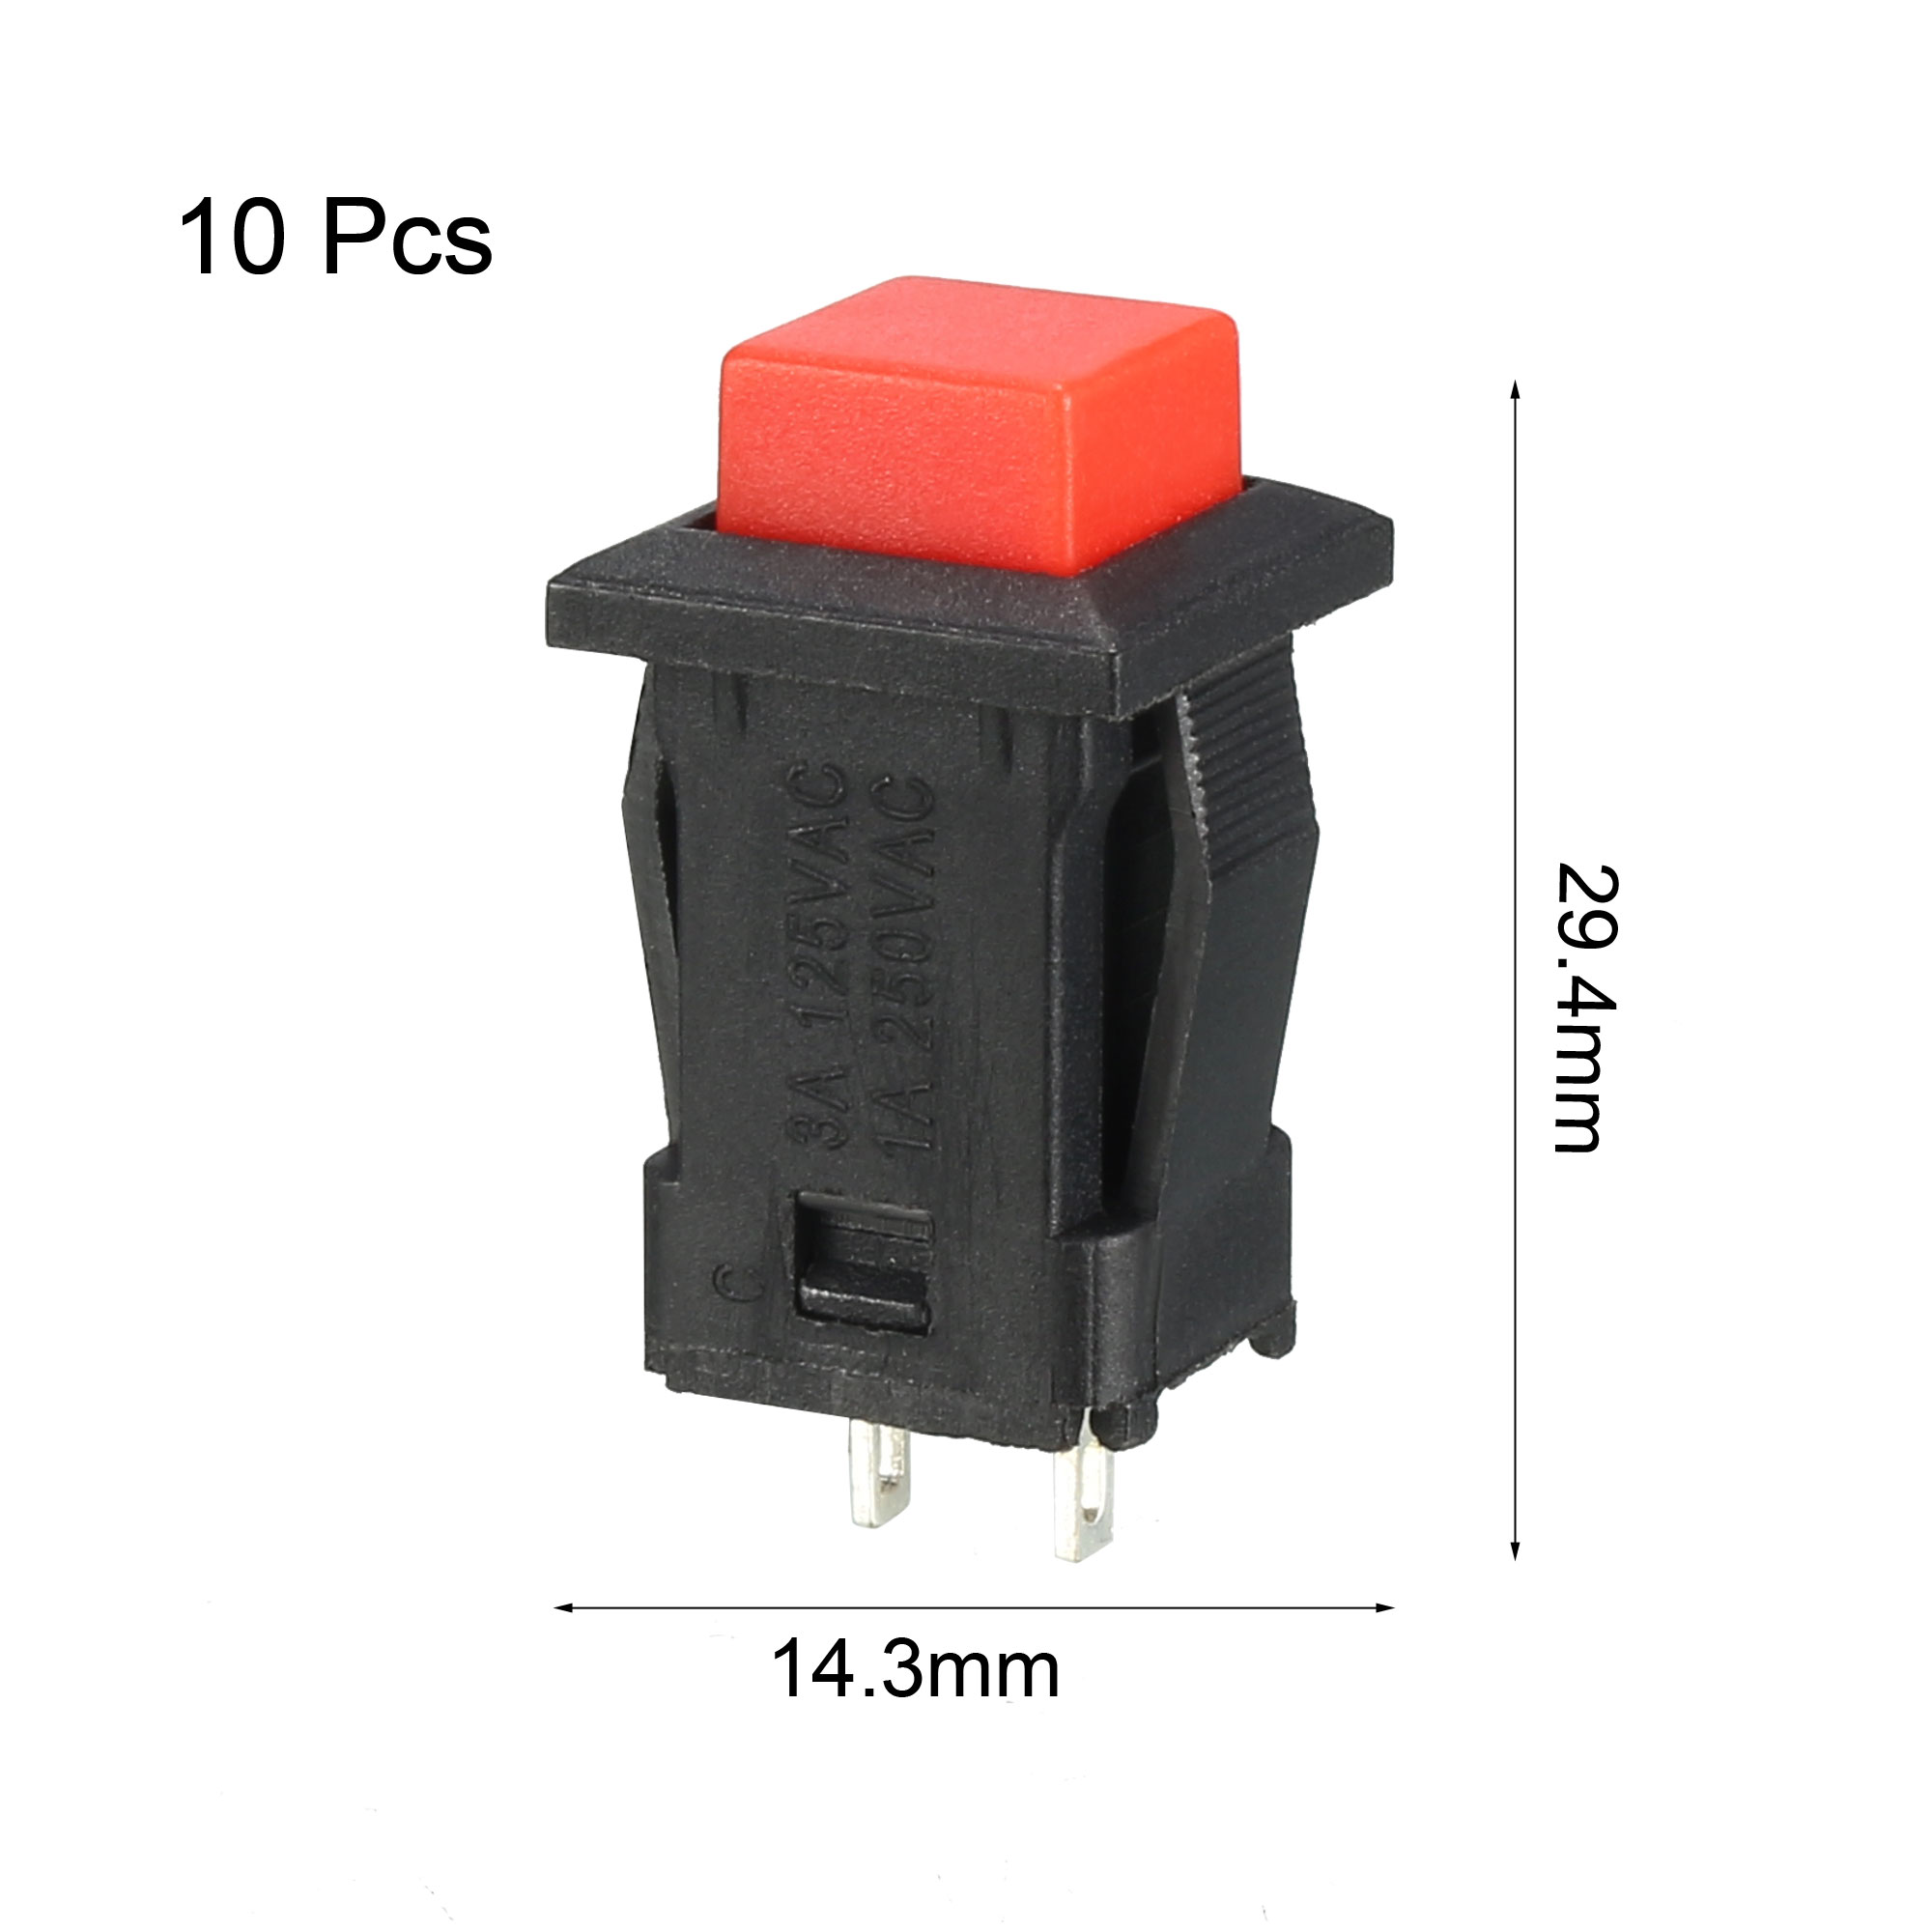 12mm Mounting Hole Red Square Latching Push Button Switch SPST NO 10pcs - image 3 of 4